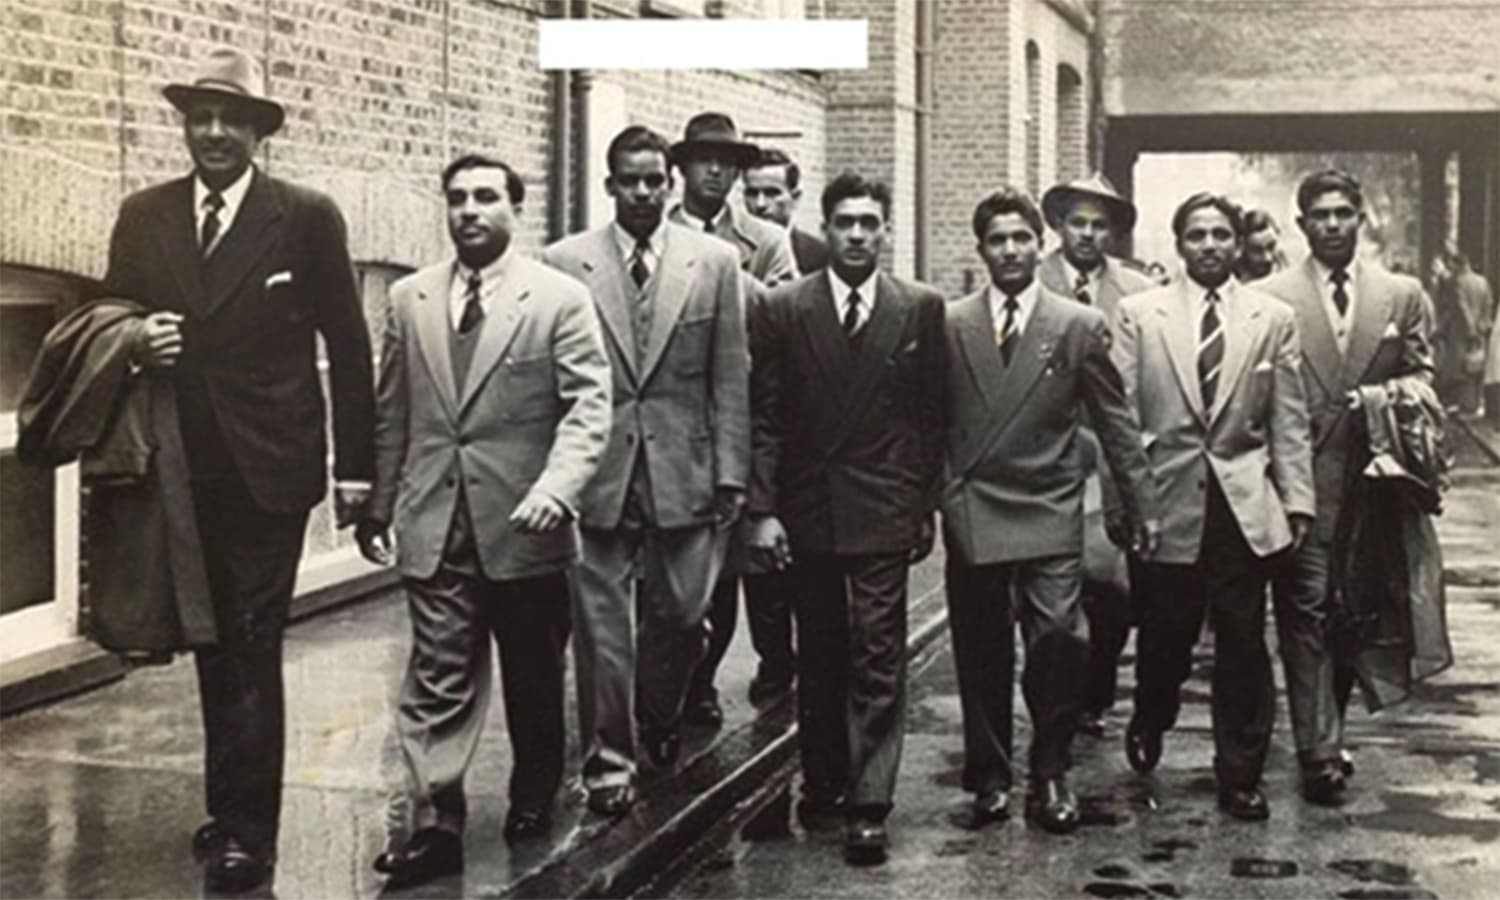 The Pakistan squad in London during the team's first ever tour of England in 1954.